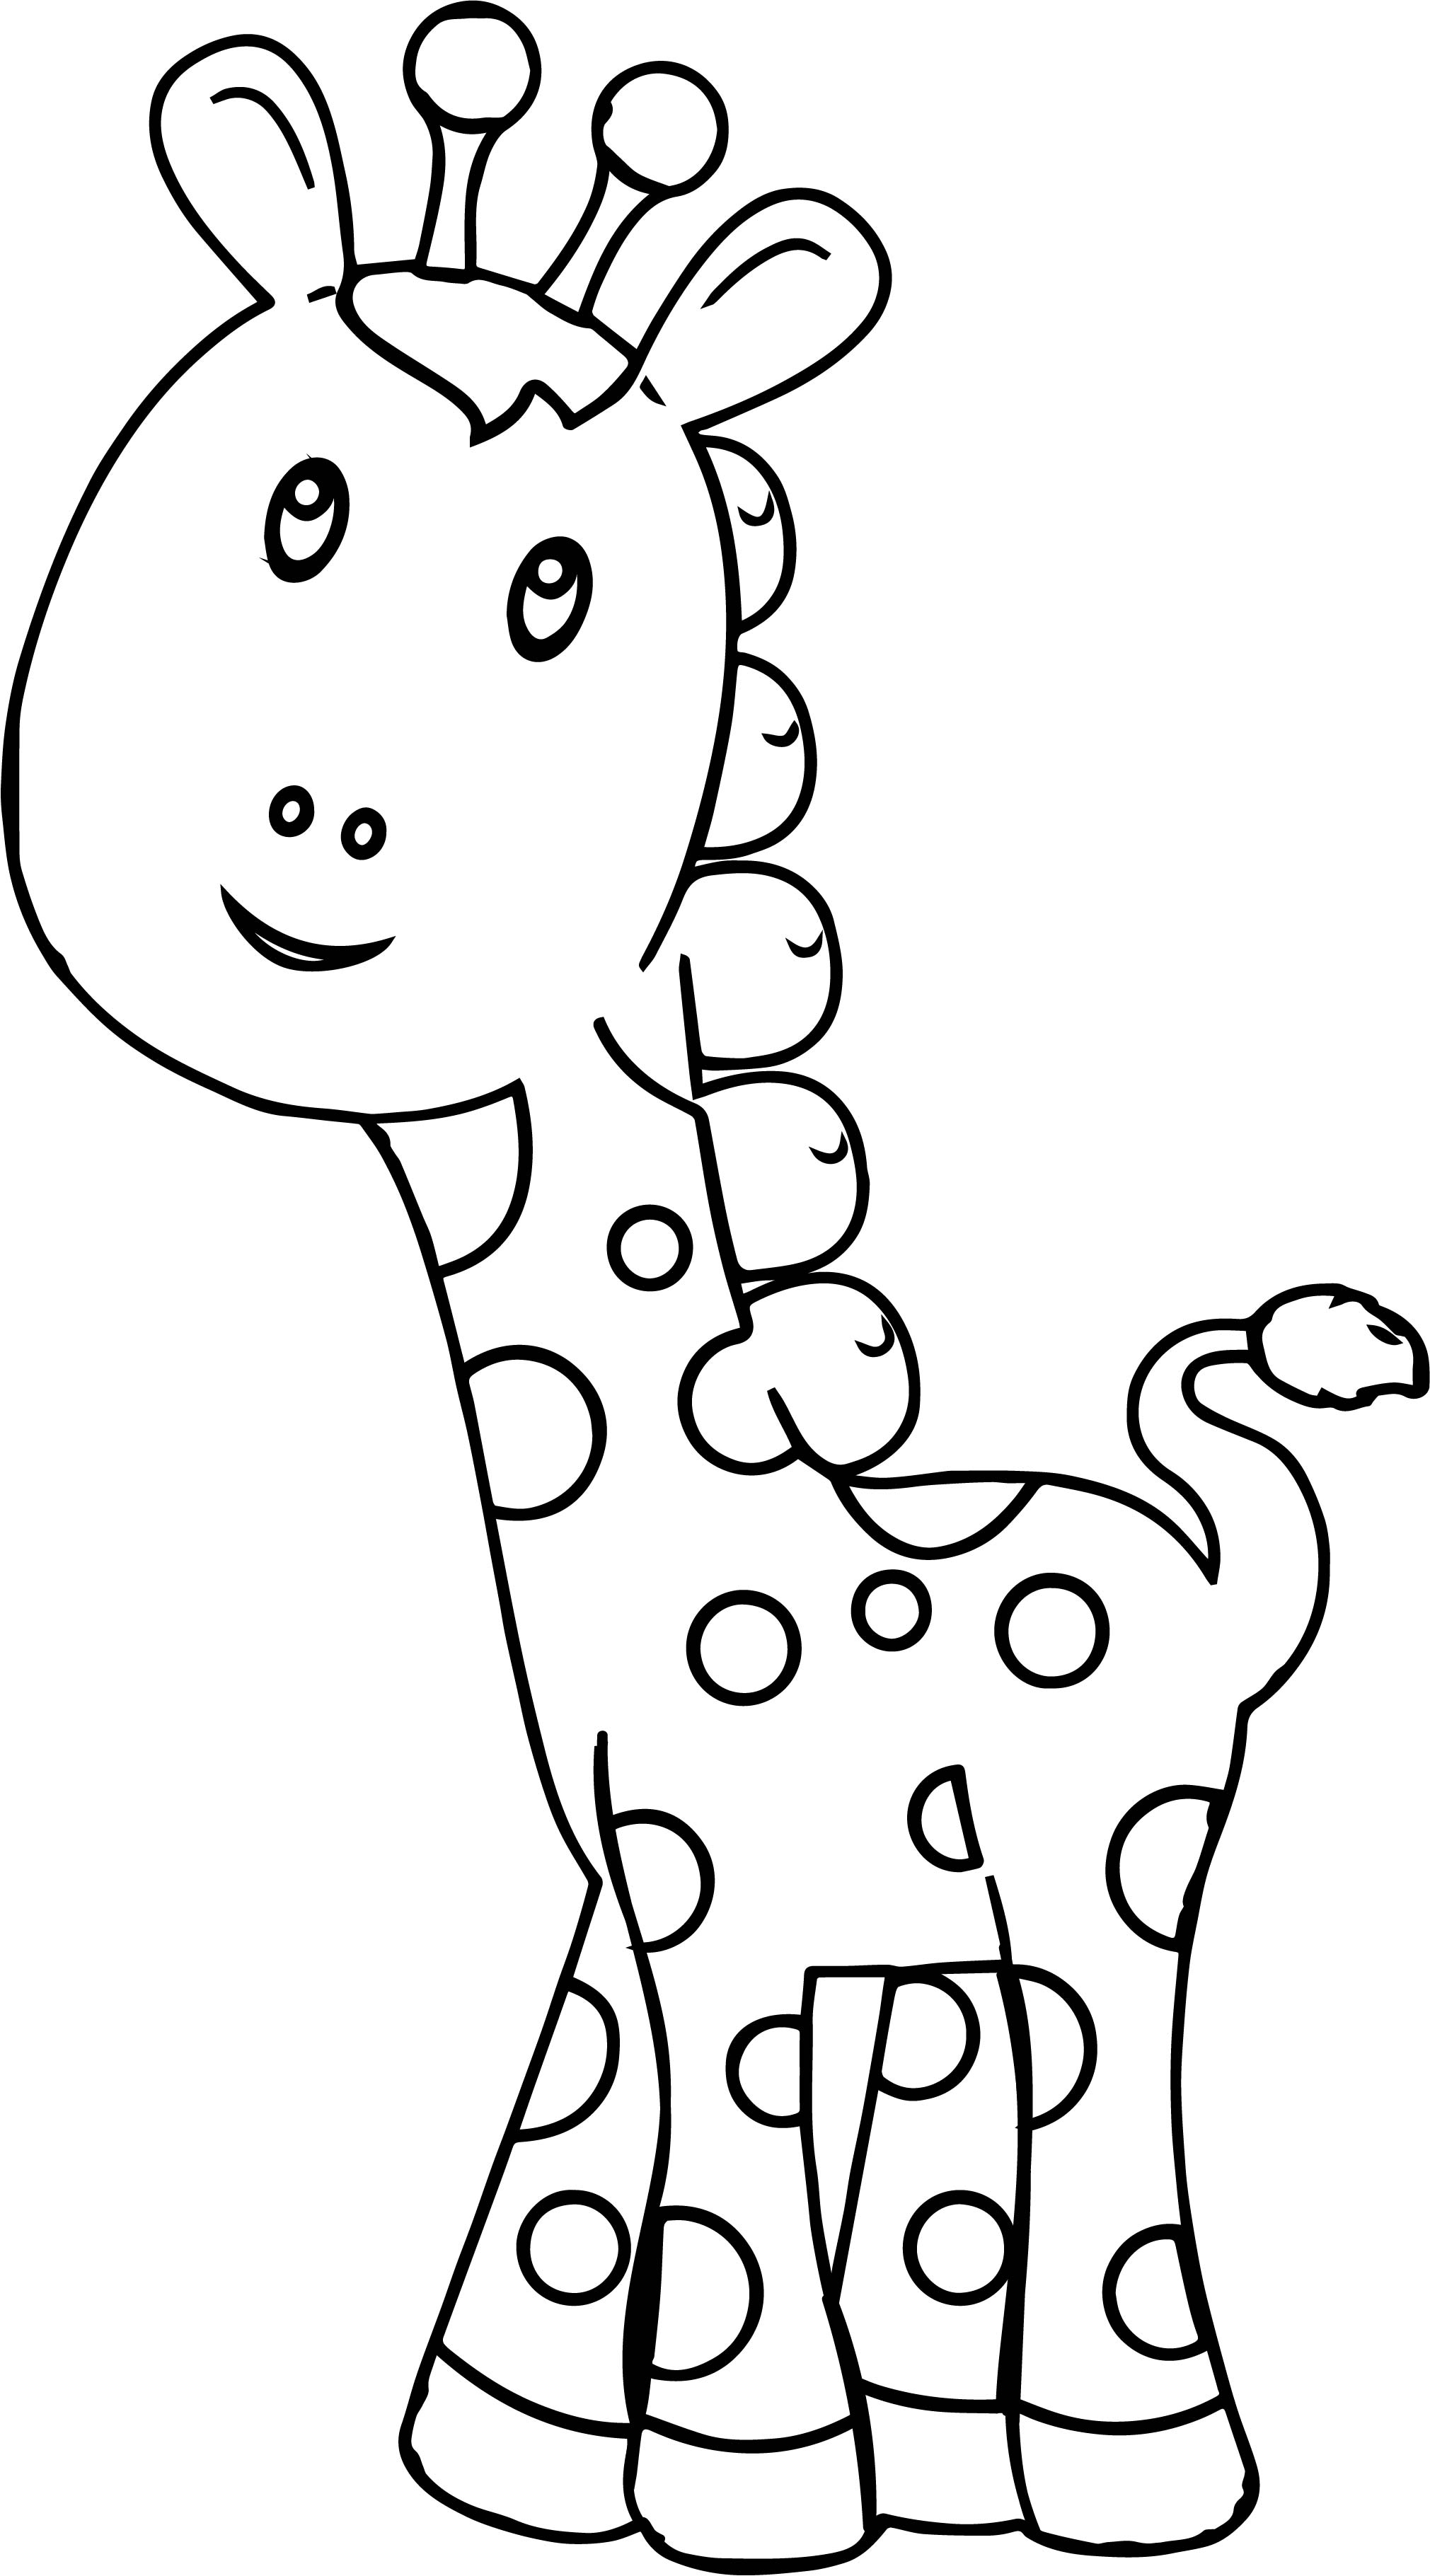 Giraffe preschool coloring page for Preschool coloring pages